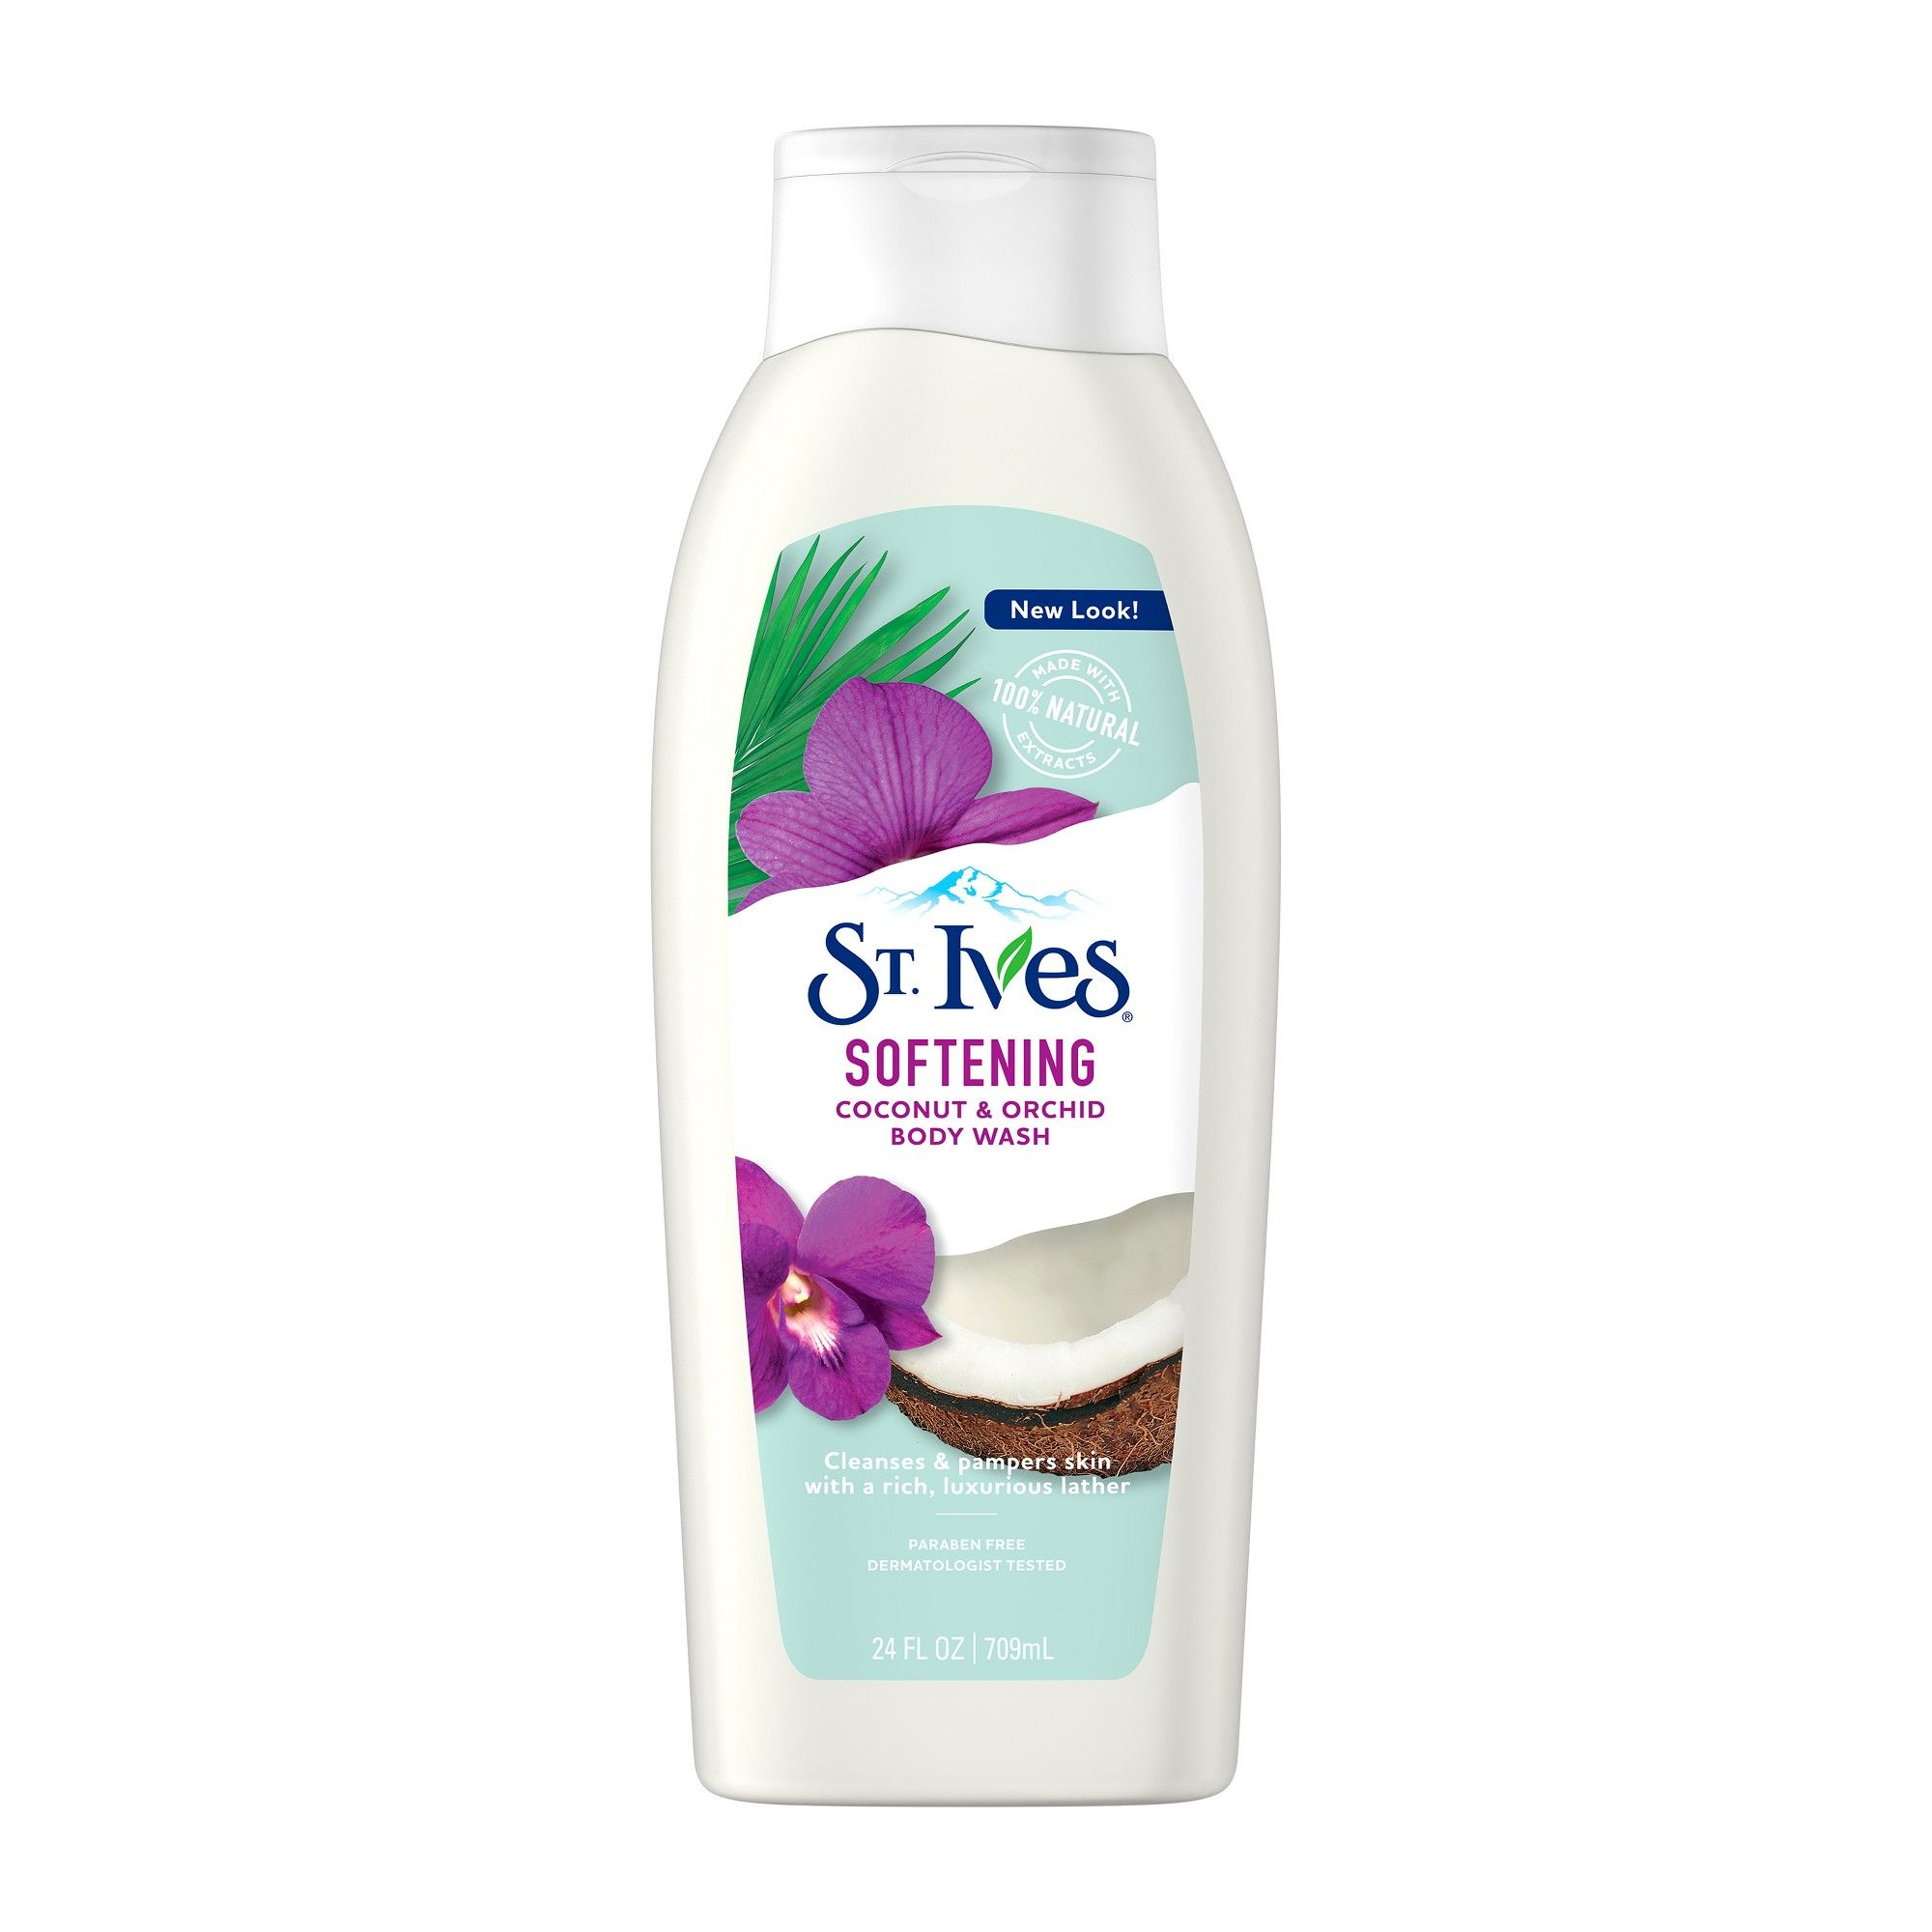 St. Ives Soft and Silky Coconut and Orchid Body Wash 24 oz